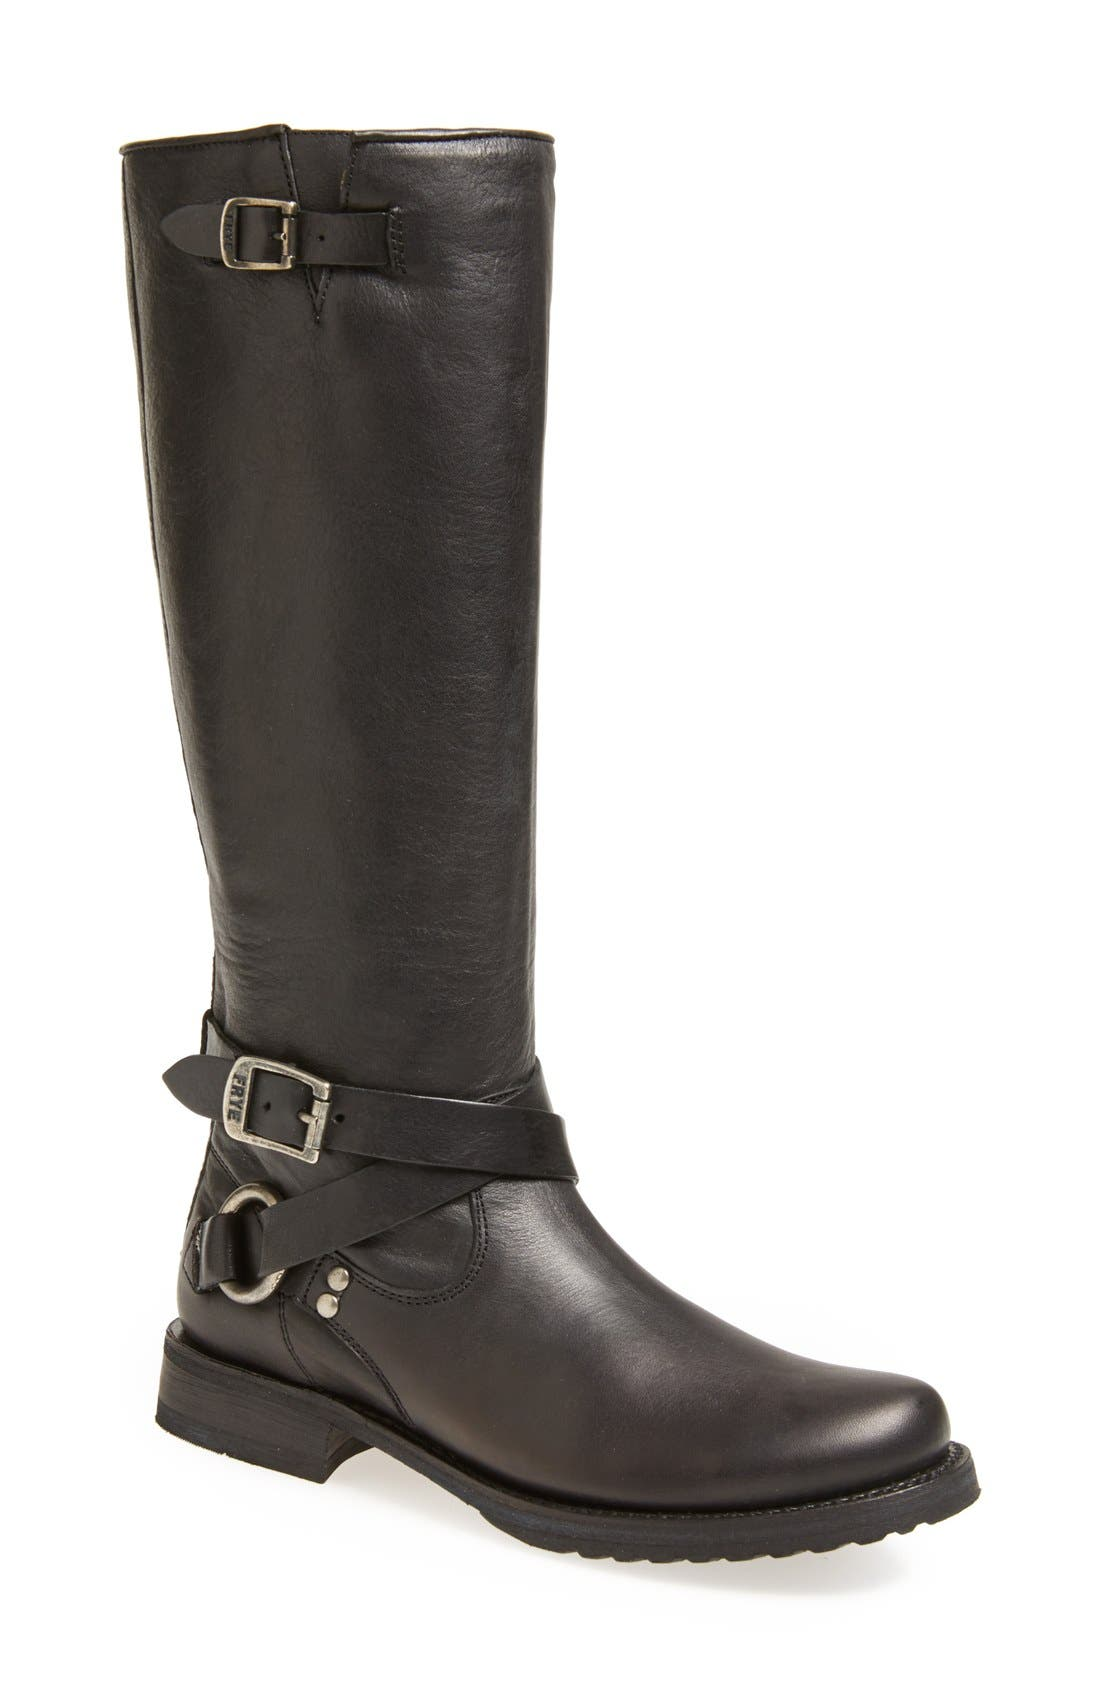 Alternate Image 1 Selected - Frye 'Veronica' Tall Boot (Women)